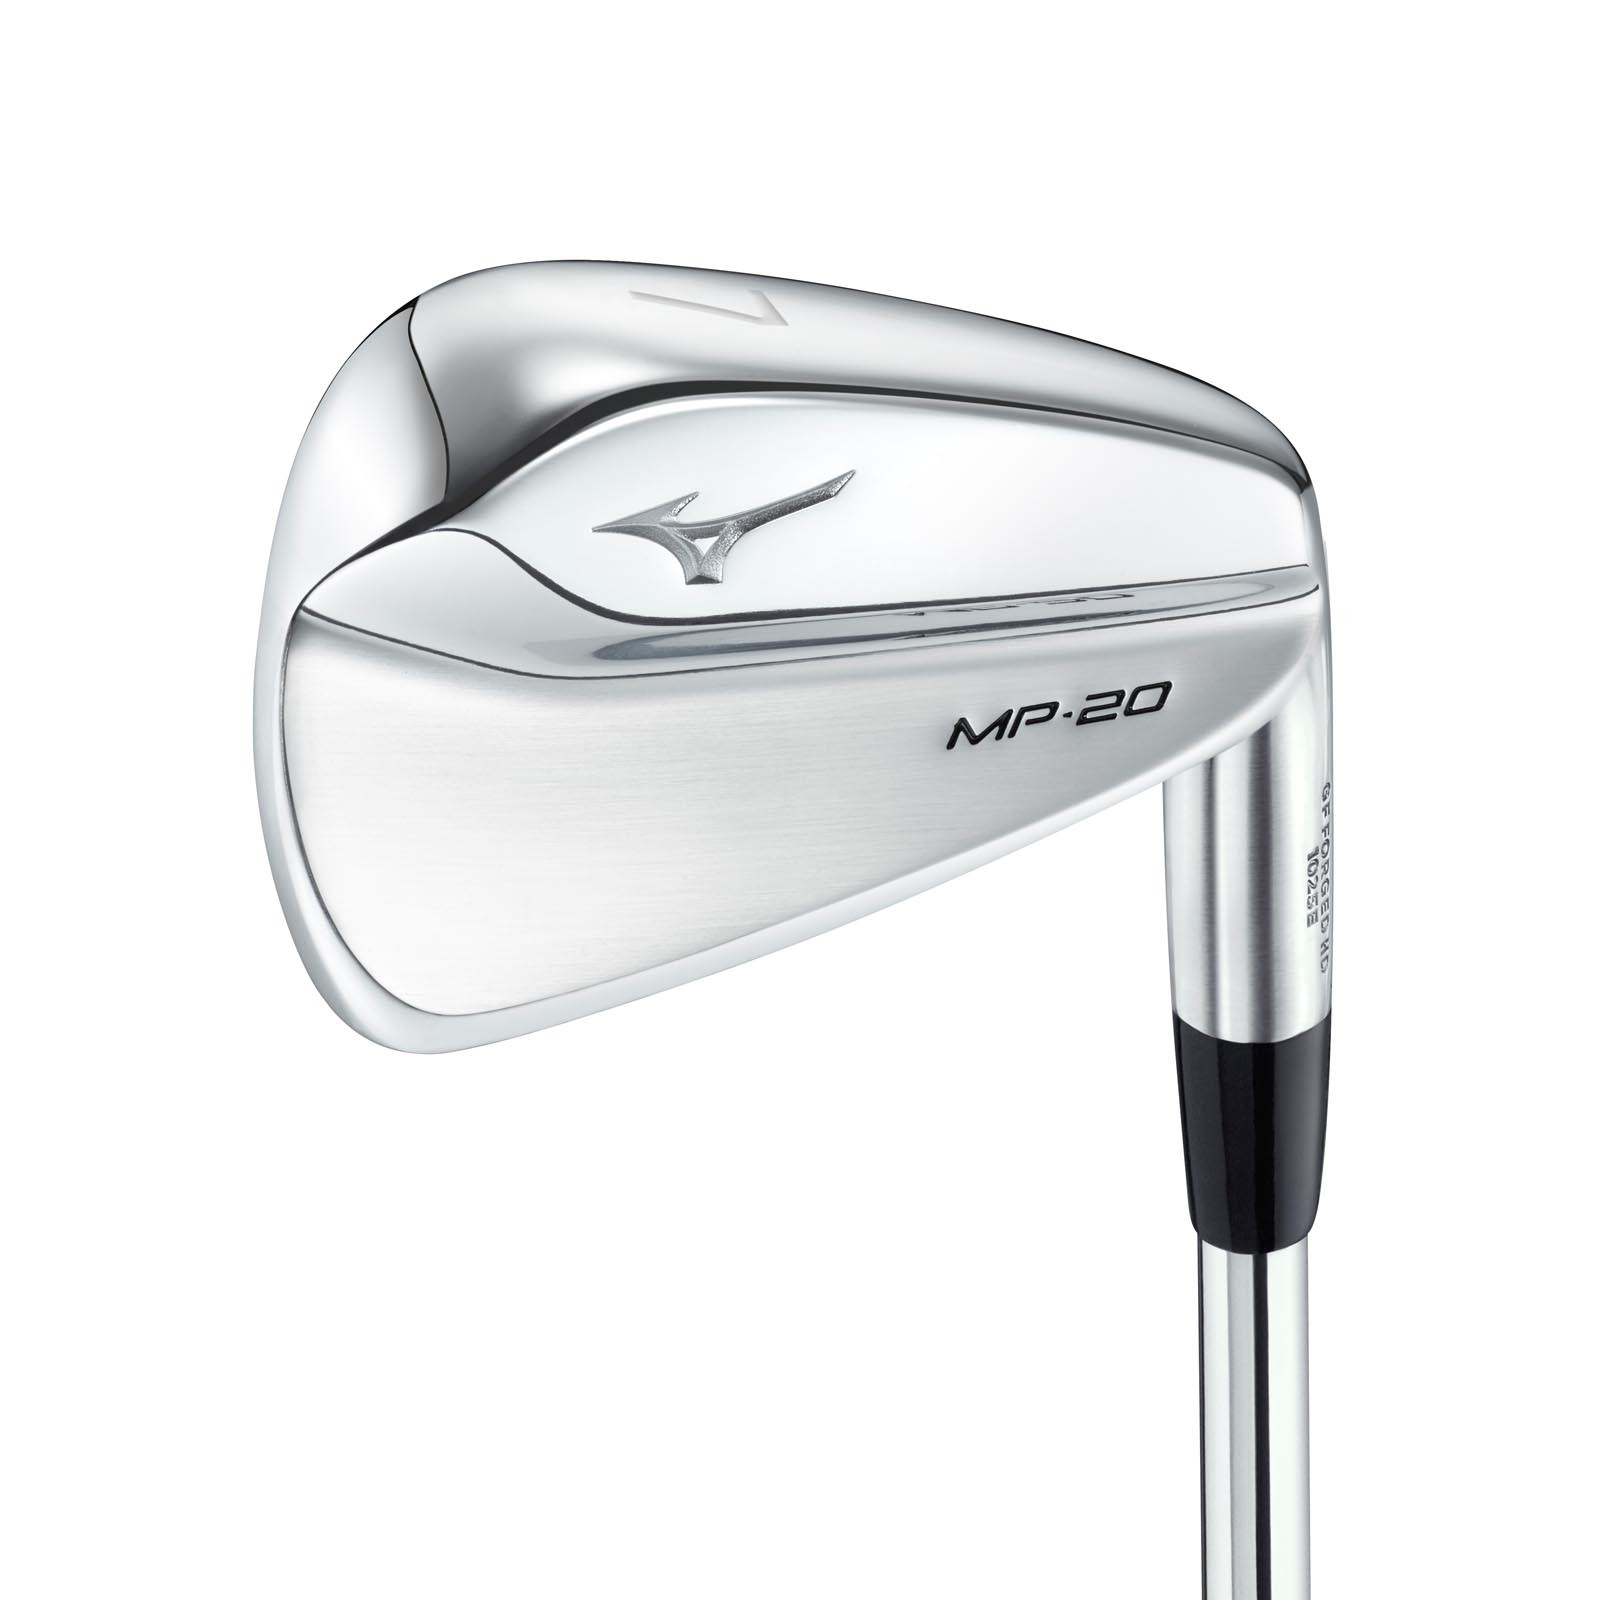 Mizuno MP-20 Golf Irons